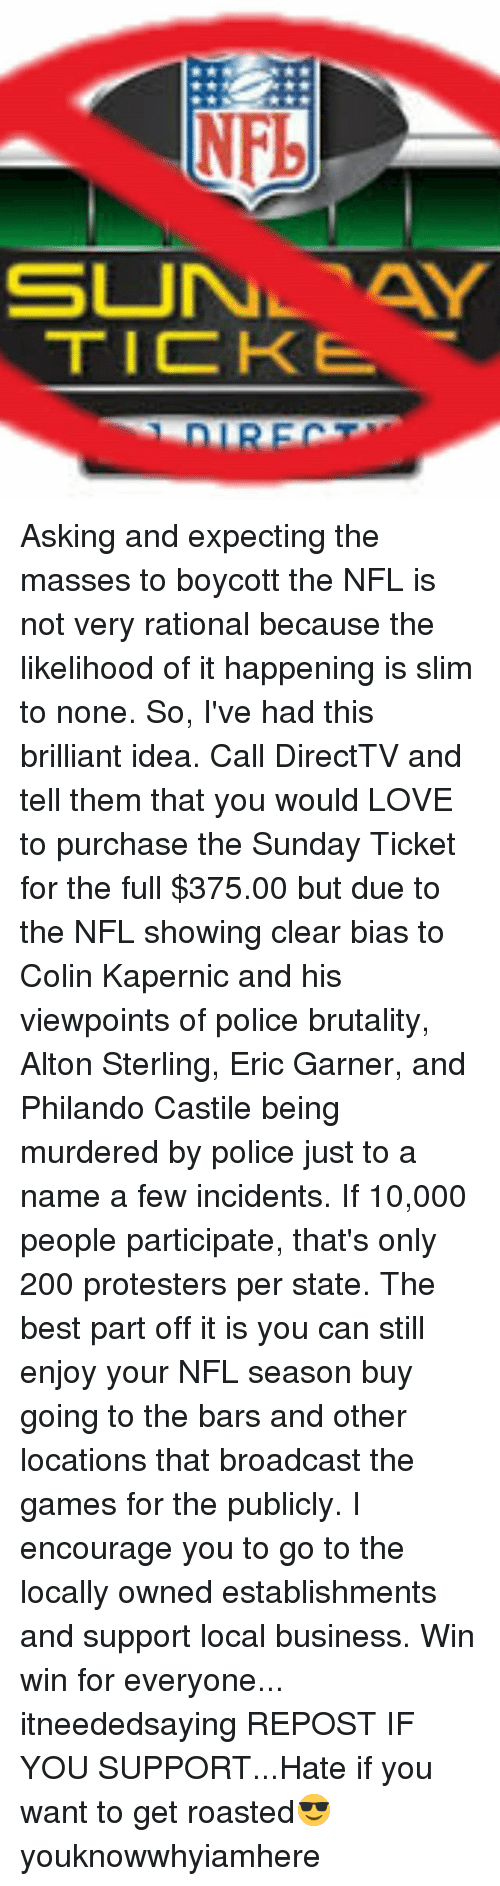 the sundays: SUNAY  TICKE Asking and expecting the masses to boycott the NFL is not very rational because the likelihood of it happening is slim to none. So, I've had this brilliant idea. Call DirectTV and tell them that you would LOVE to purchase the Sunday Ticket for the full $375.00 but due to the NFL showing clear bias to Colin Kapernic and his viewpoints of police brutality, Alton Sterling, Eric Garner, and Philando Castile being murdered by police just to a name a few incidents. If 10,000 people participate, that's only 200 protesters per state. The best part off it is you can still enjoy your NFL season buy going to the bars and other locations that broadcast the games for the publicly. I encourage you to go to the locally owned establishments and support local business. Win win for everyone... itneededsaying REPOST IF YOU SUPPORT...Hate if you want to get roasted😎 youknowwhyiamhere